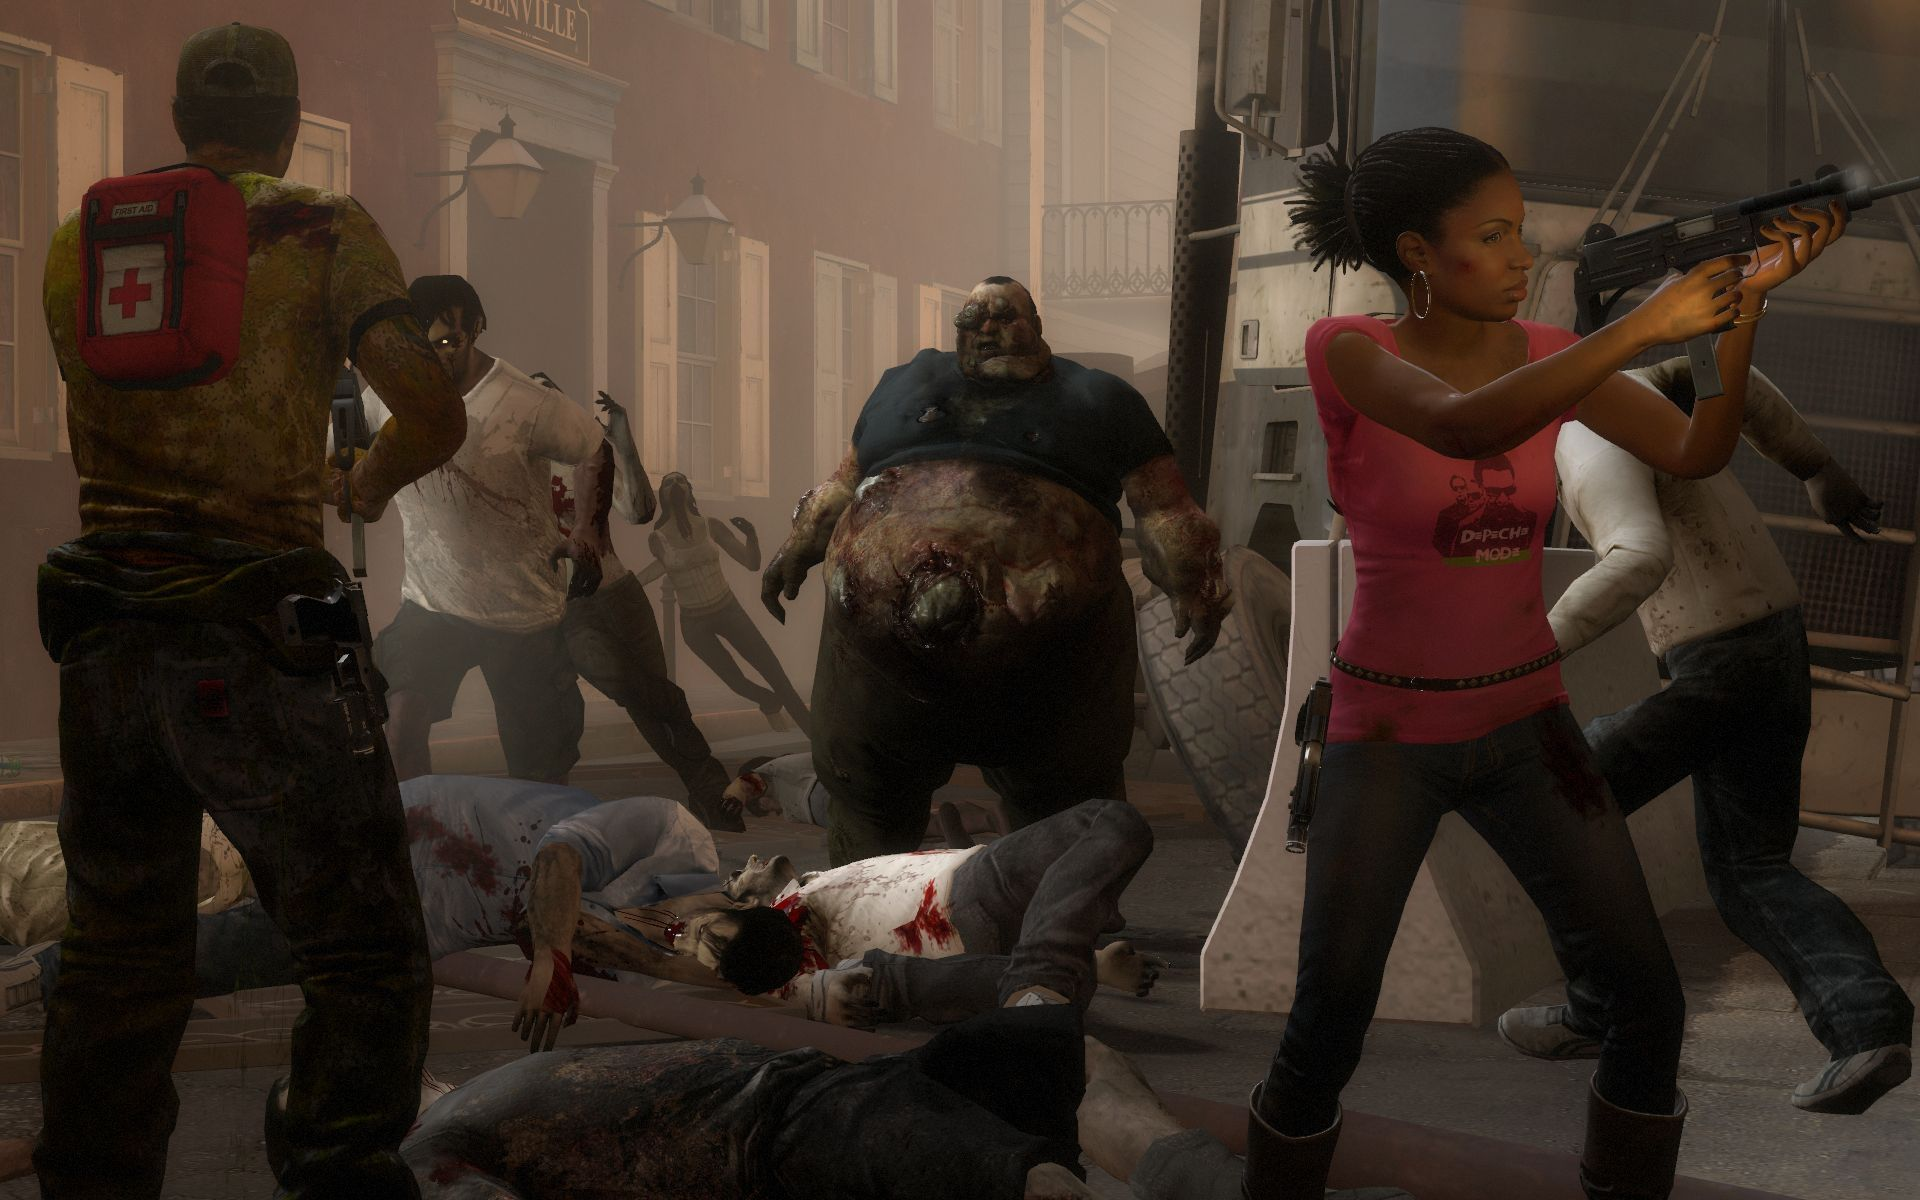 Pin By Ender Mandono On Left 4 Dead Art Left 4 Dead Xbox One Video Game News